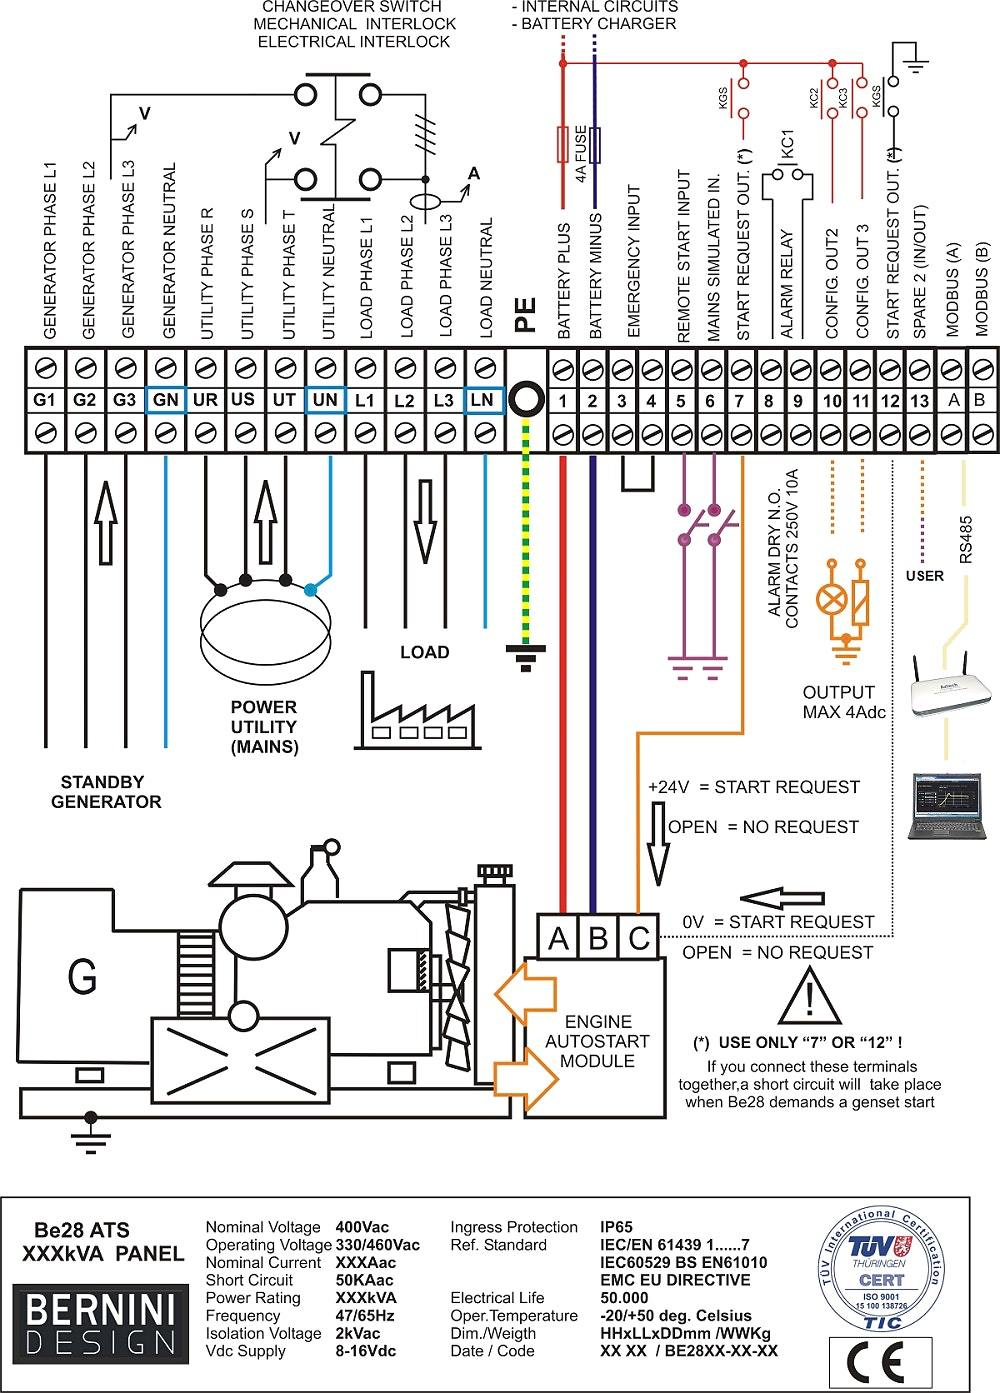 WRG-5771] Rts Transfer Switch Wiring Diagram on